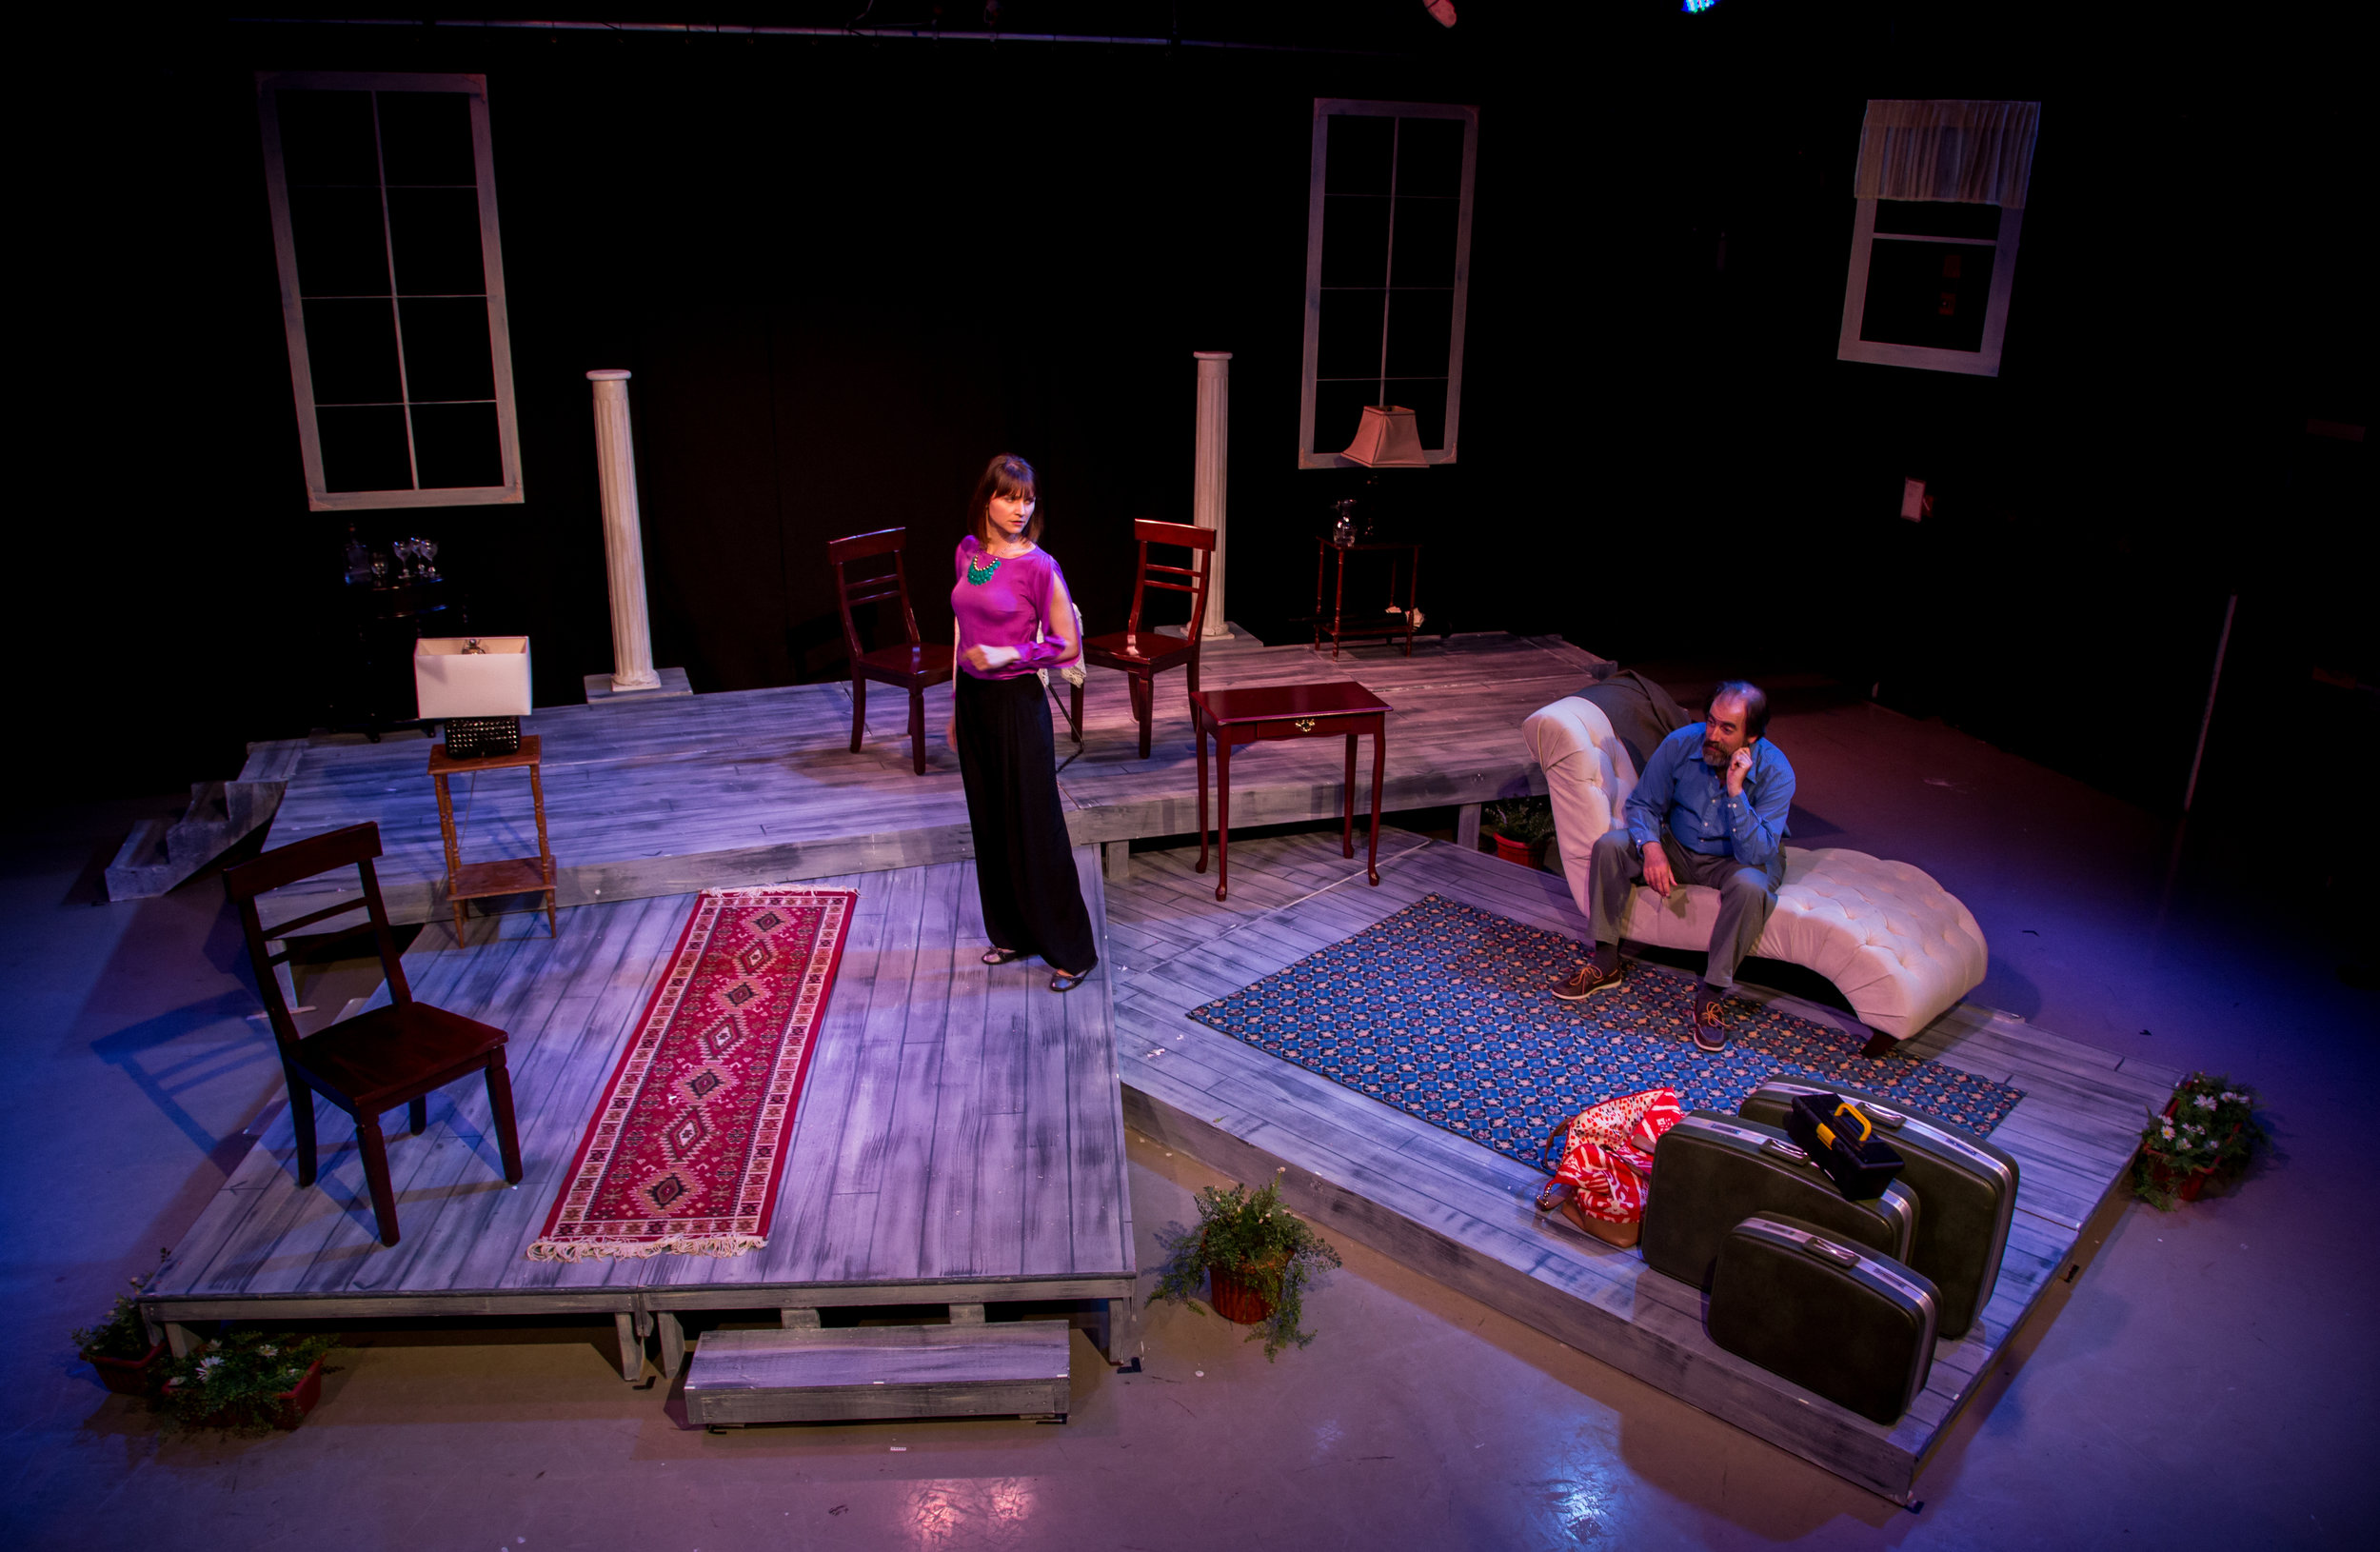 Arkadina (Amie Cazel) and Sorin (Glenn Stoops) lose themselves in their own problems in Ophelia Theatre Group's production of The Seagull by Anton Chekhov. The Seagull was performed at Ophelia Theater in Astoria, New York. Photography courtesy of  John Robert Hoffman .